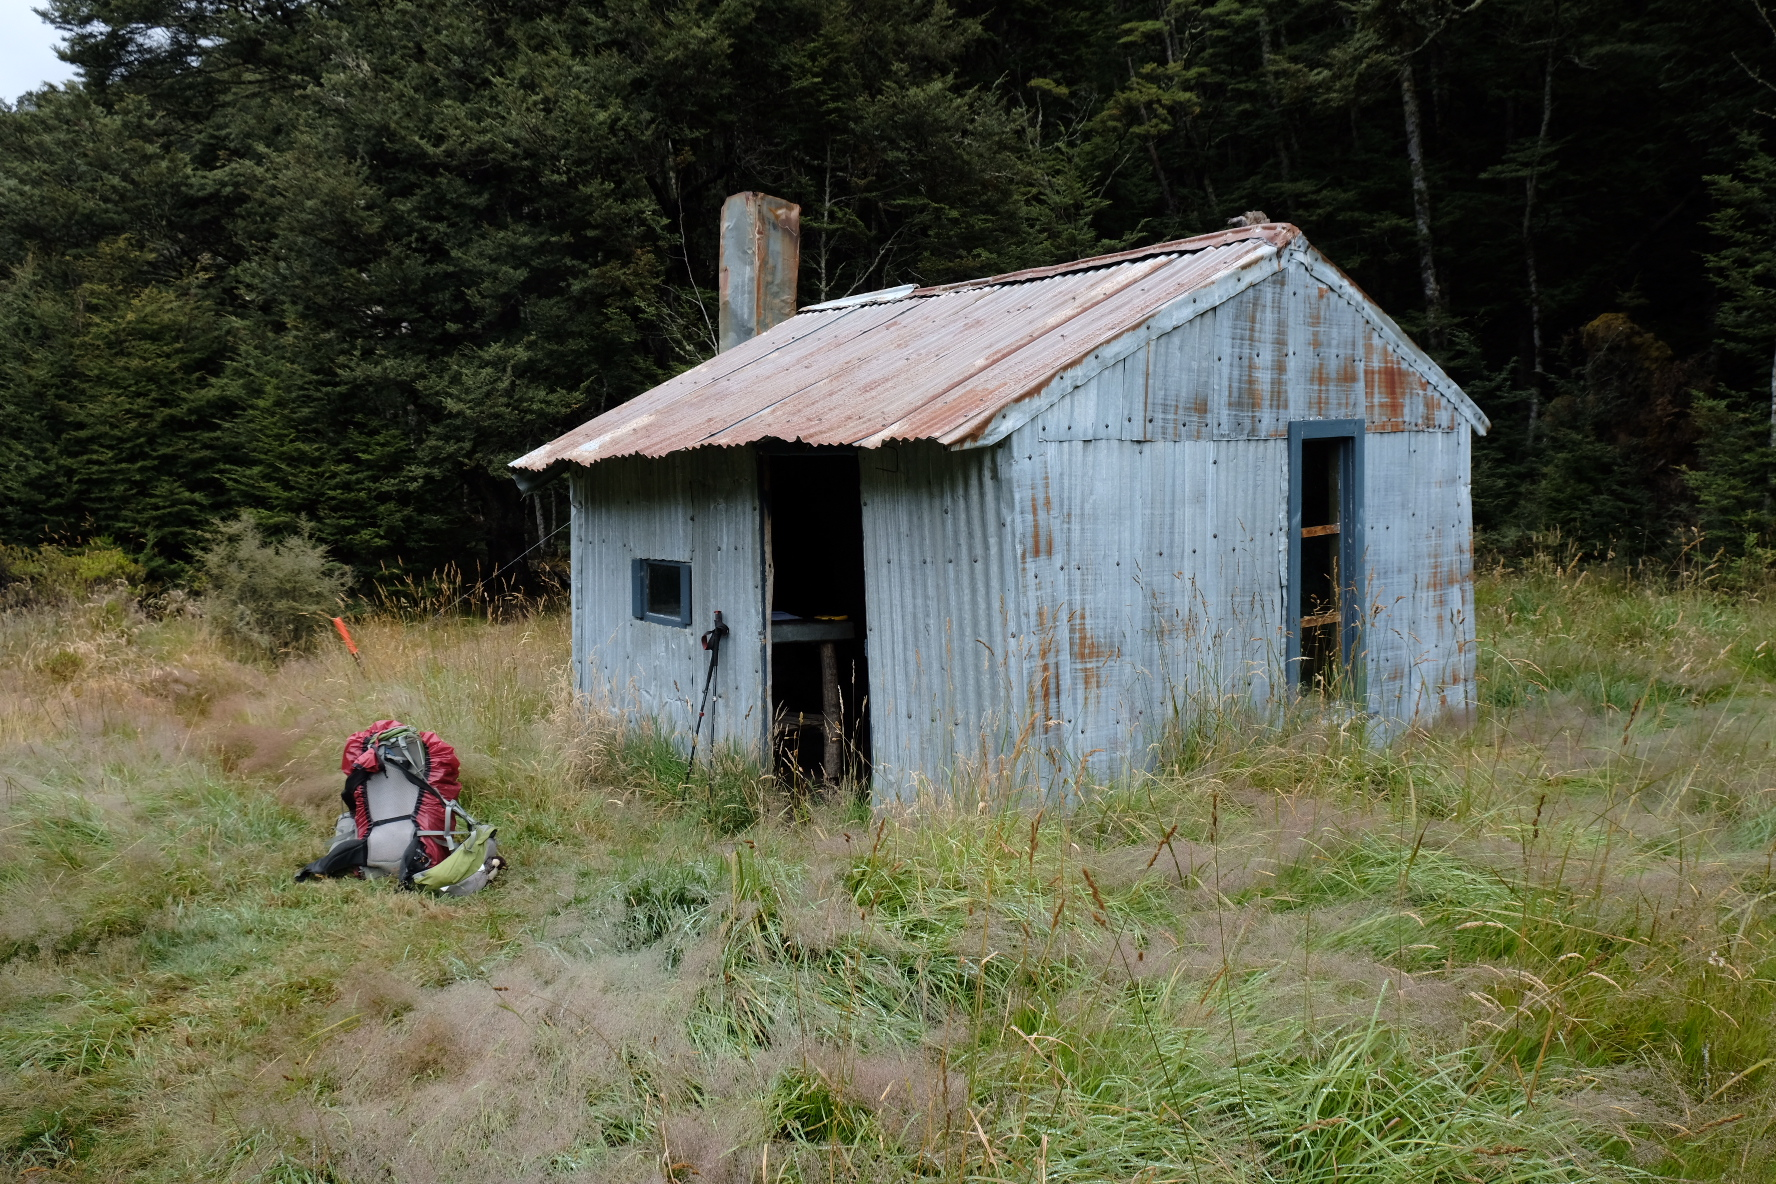 A hut with historic interest